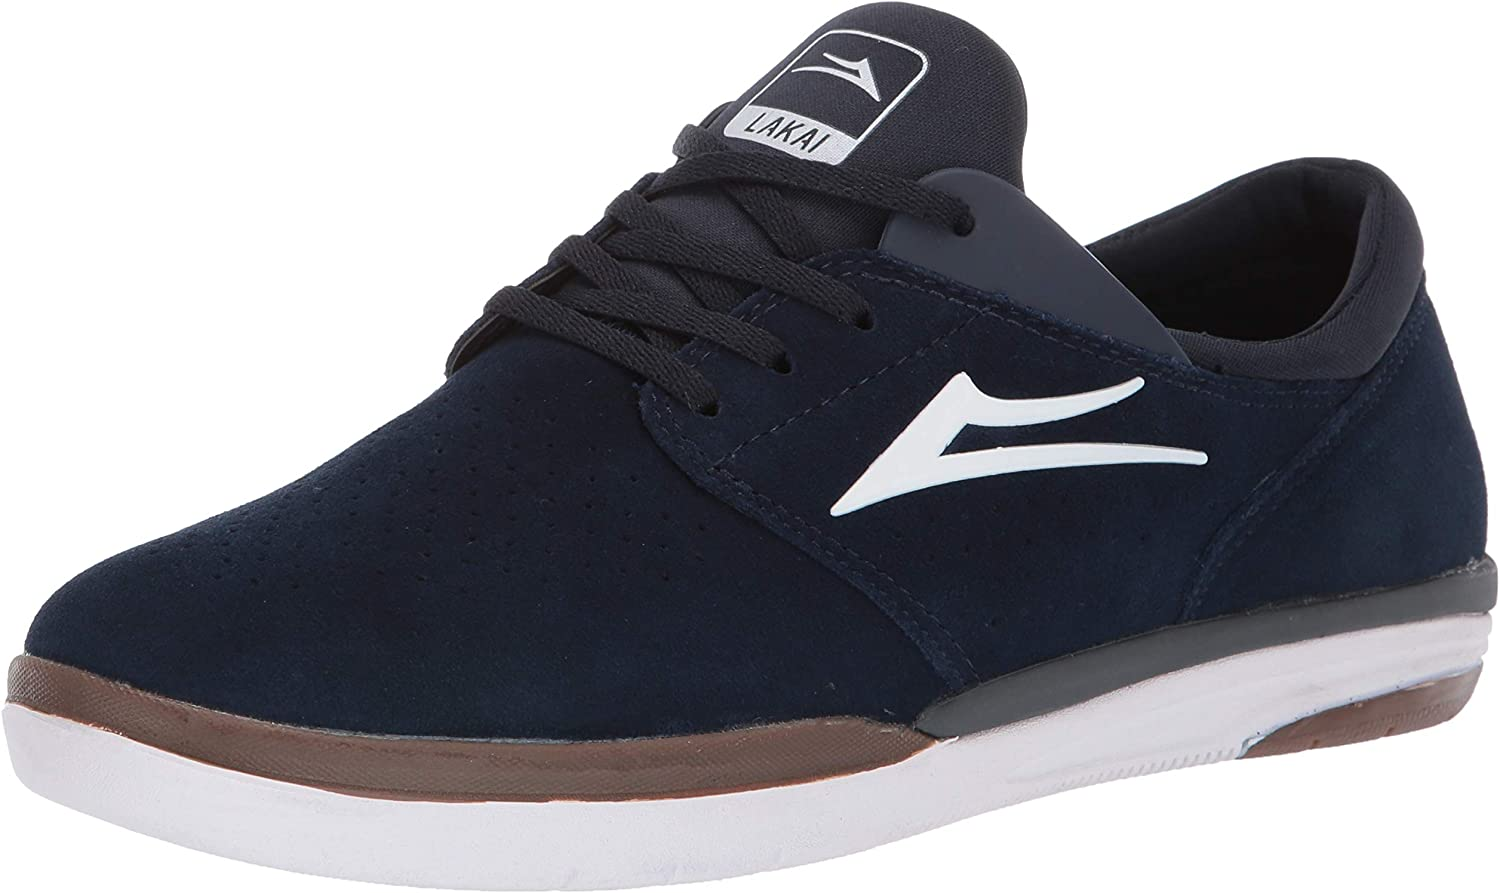 Lakai Footwear Fremont Navy Suedesize Tennis shoes, Navy Suede